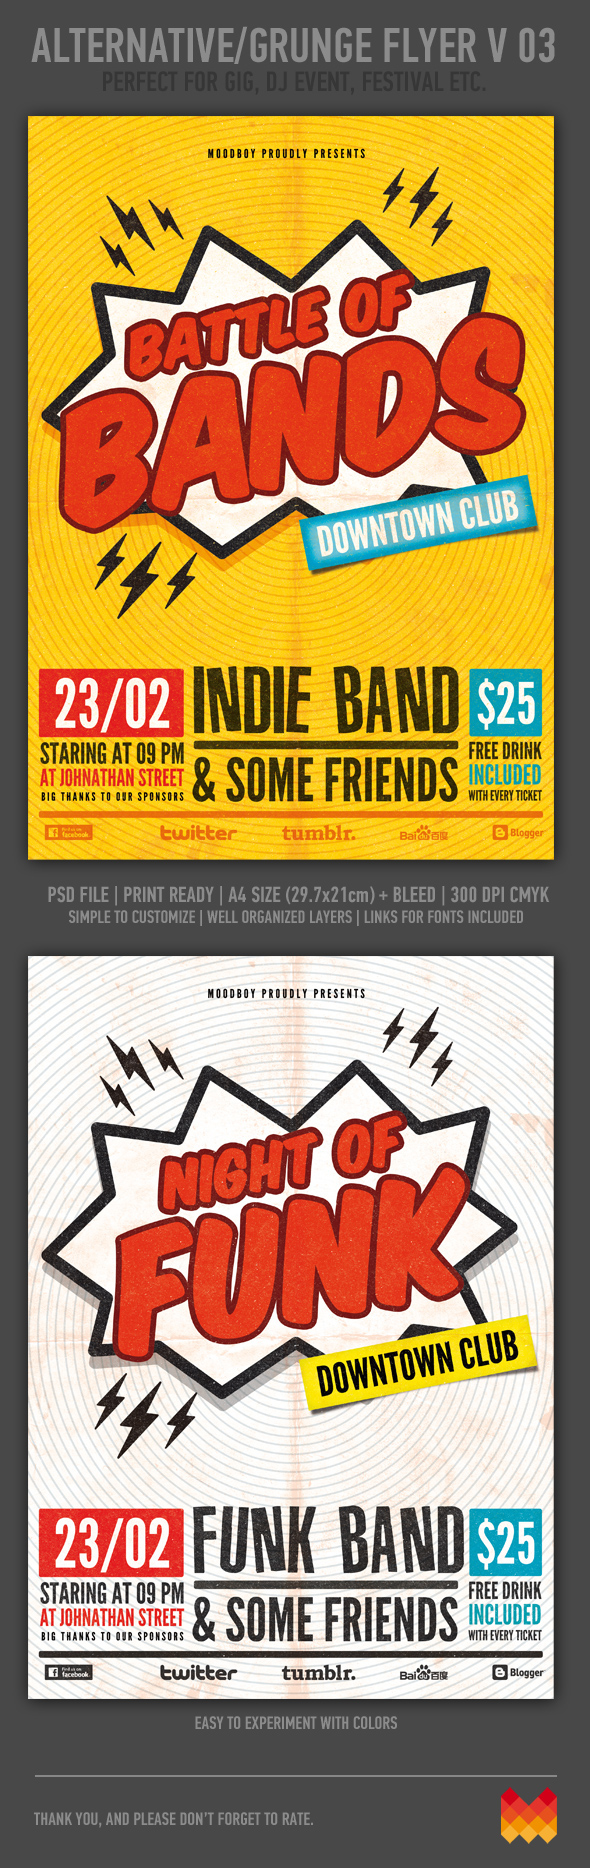 Battle Of Bands Flyer Template On Behance